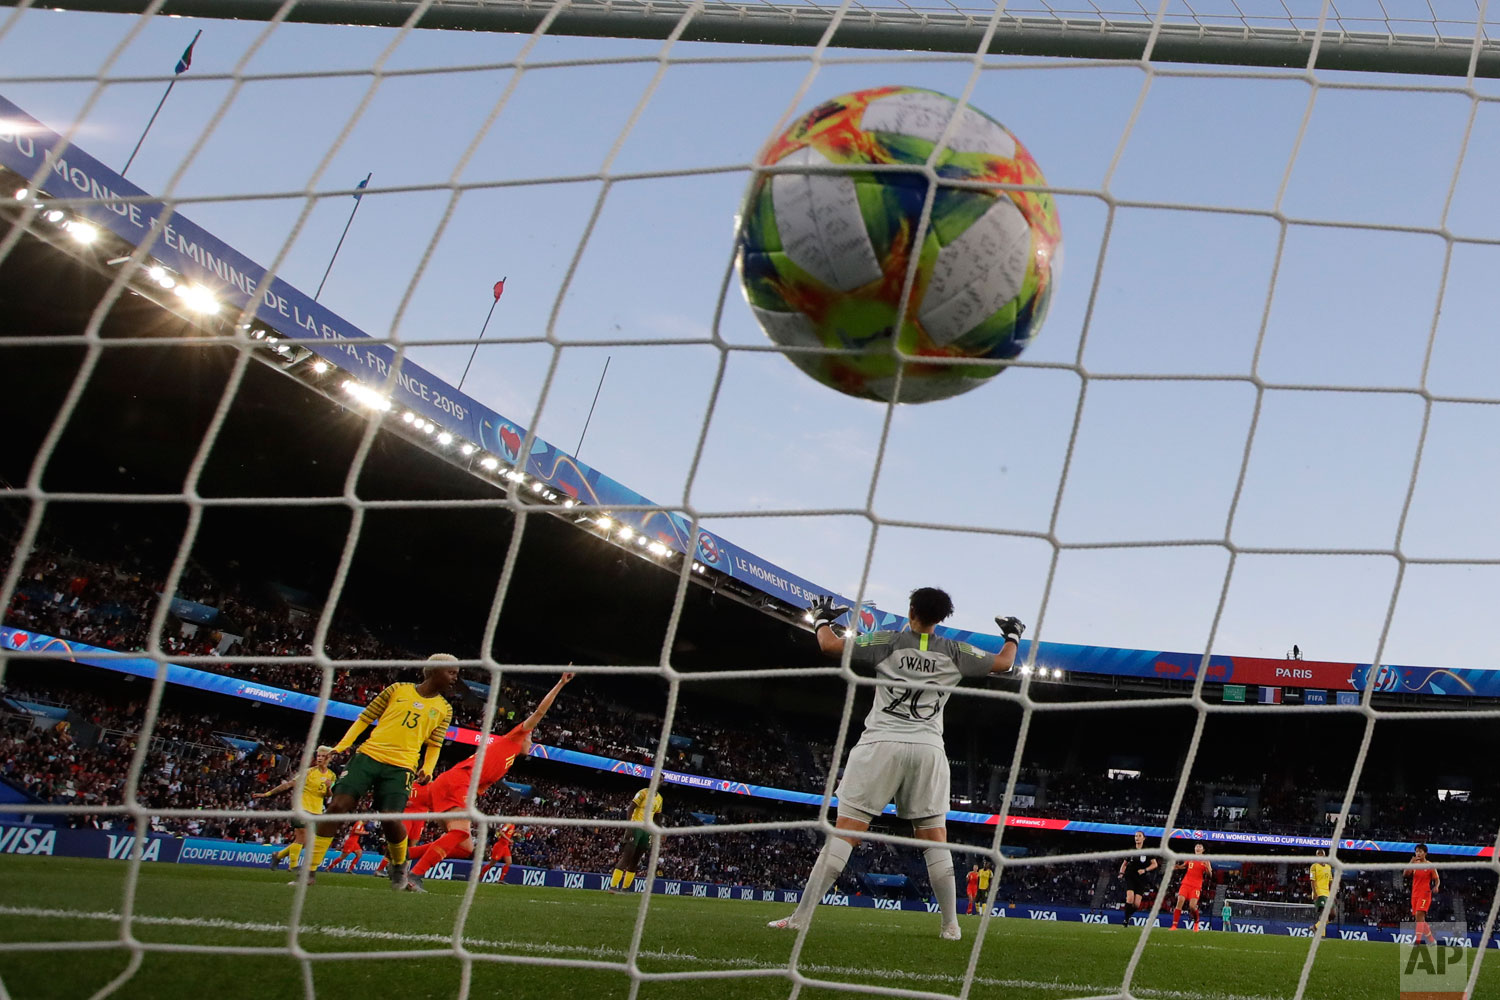 China's Li Ying, second left, celebrates after scoring the opening goal past South Africa goalkeeper Kaylin Swart, right, during the Women's World Cup Group B soccer match between China and South Africa at Parc des Princes in Paris, France, Thursday, June 13, 2019. (AP Photo/Alessandra Tarantino)